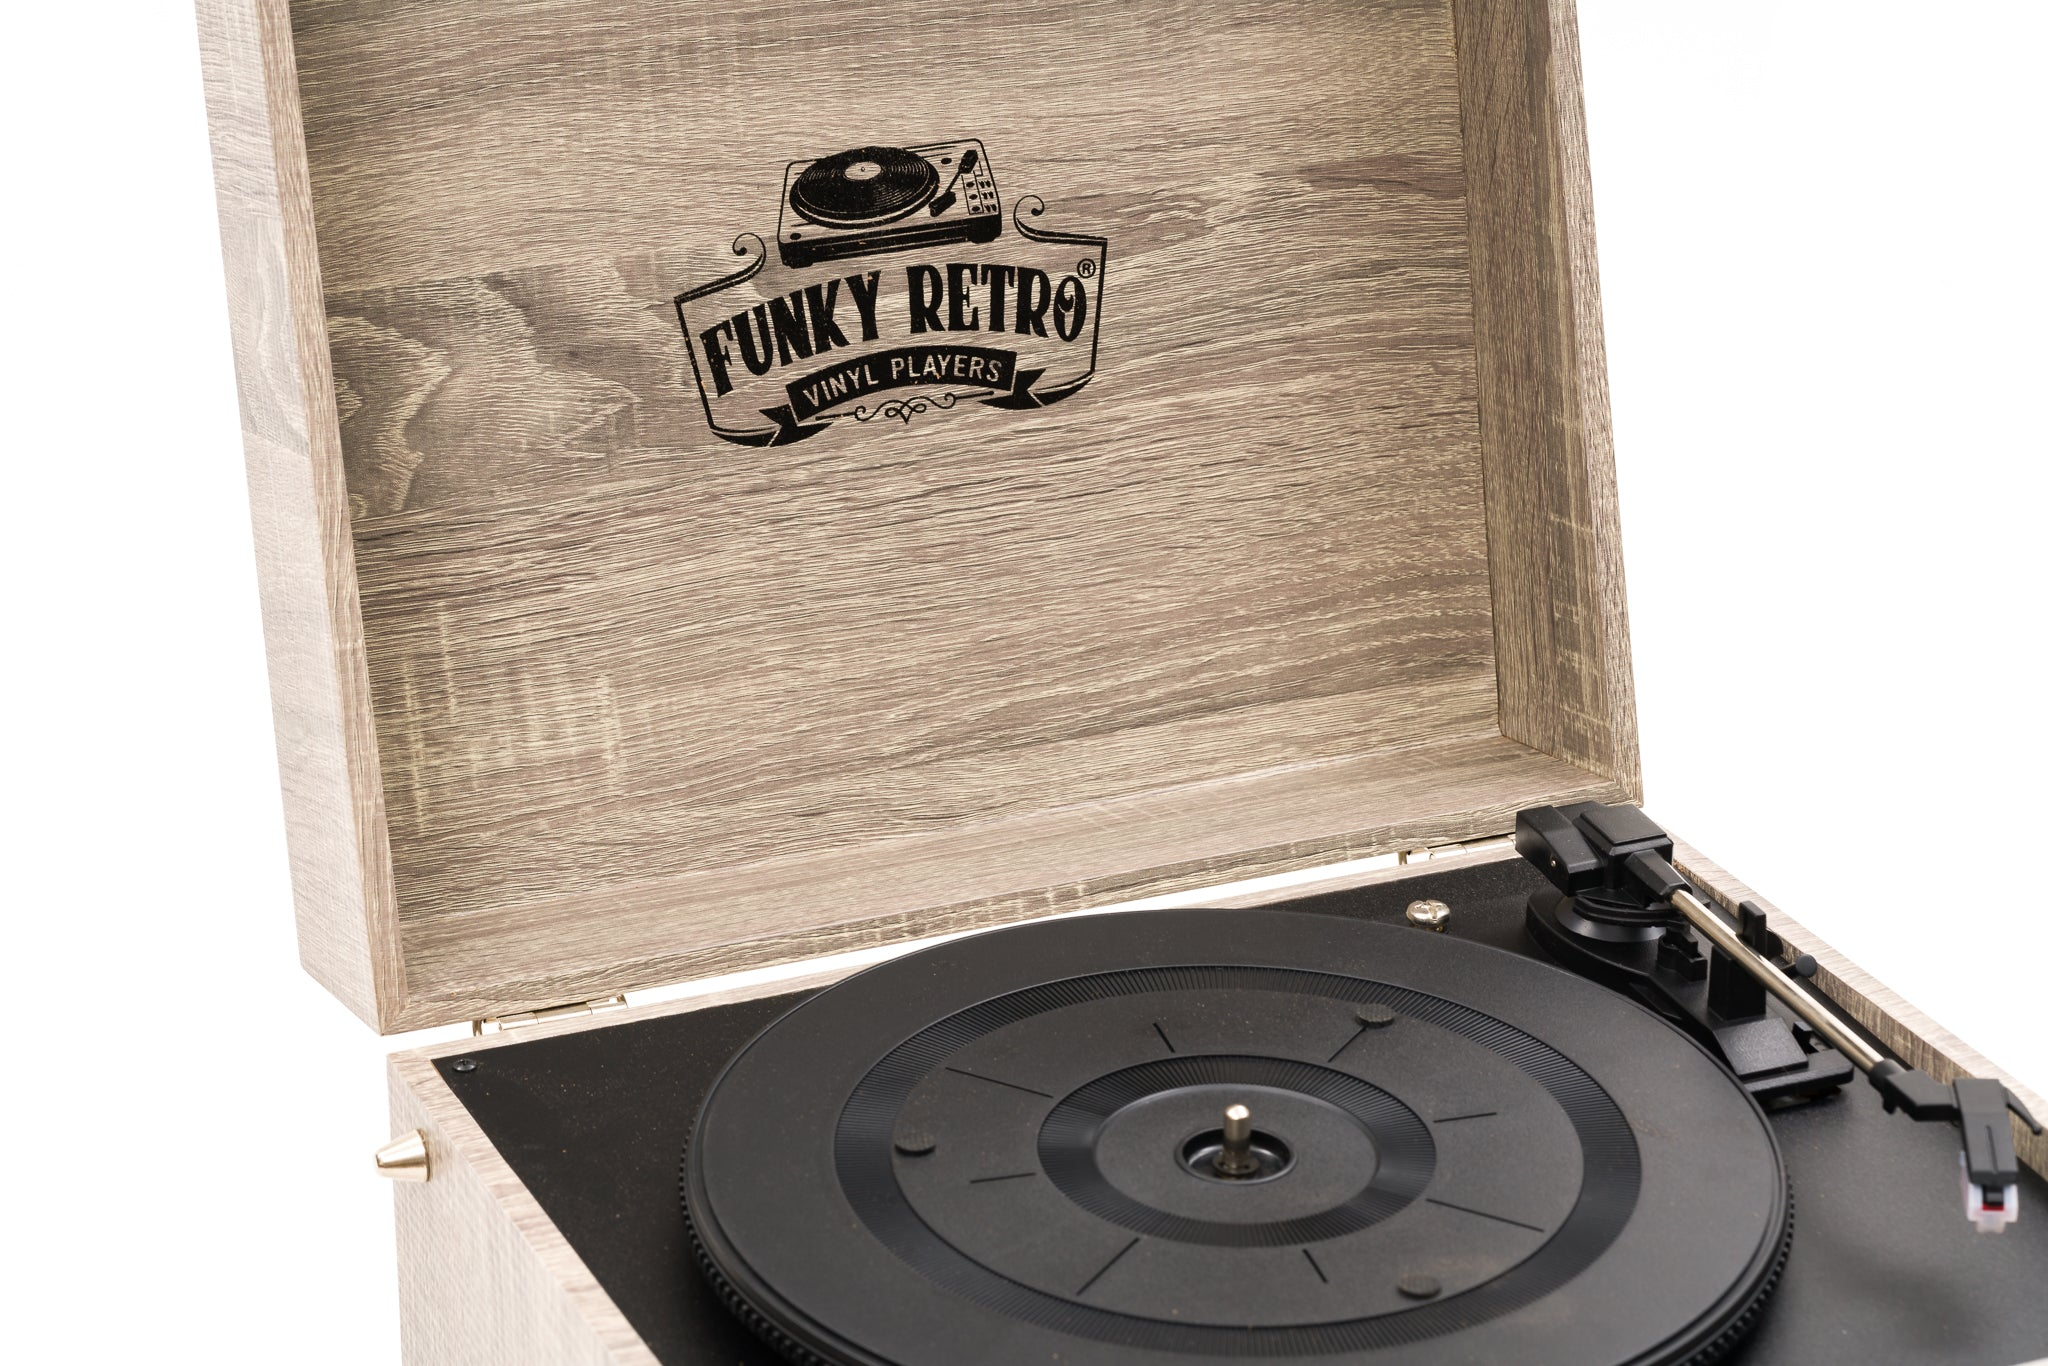 Designer Funky Retro Record / Vinyl Player / Turntable